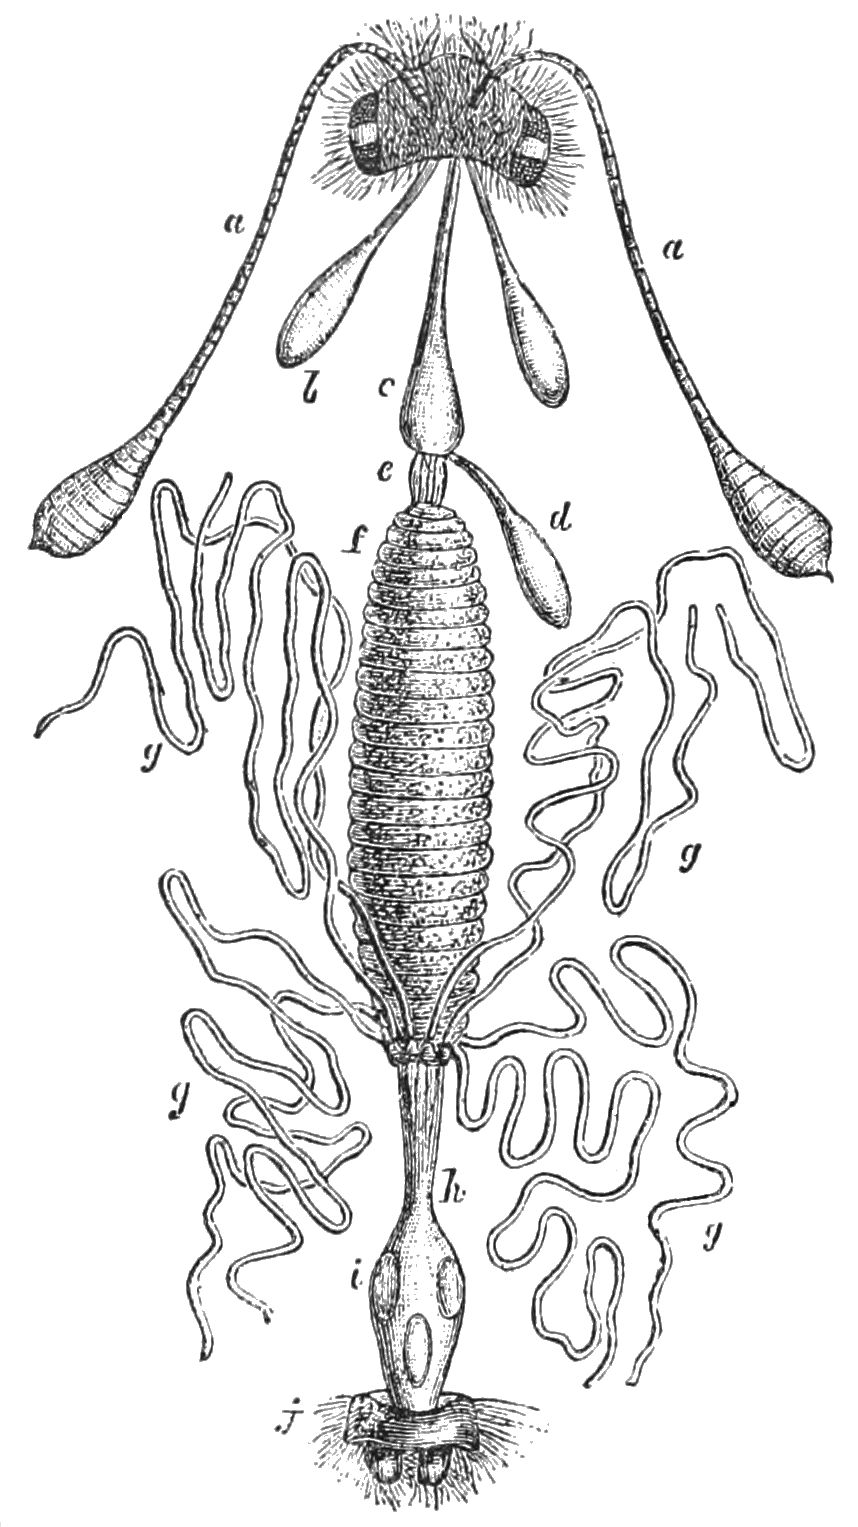 PSM V39 D248 Digestive apparatus of a sucking insect.jpg